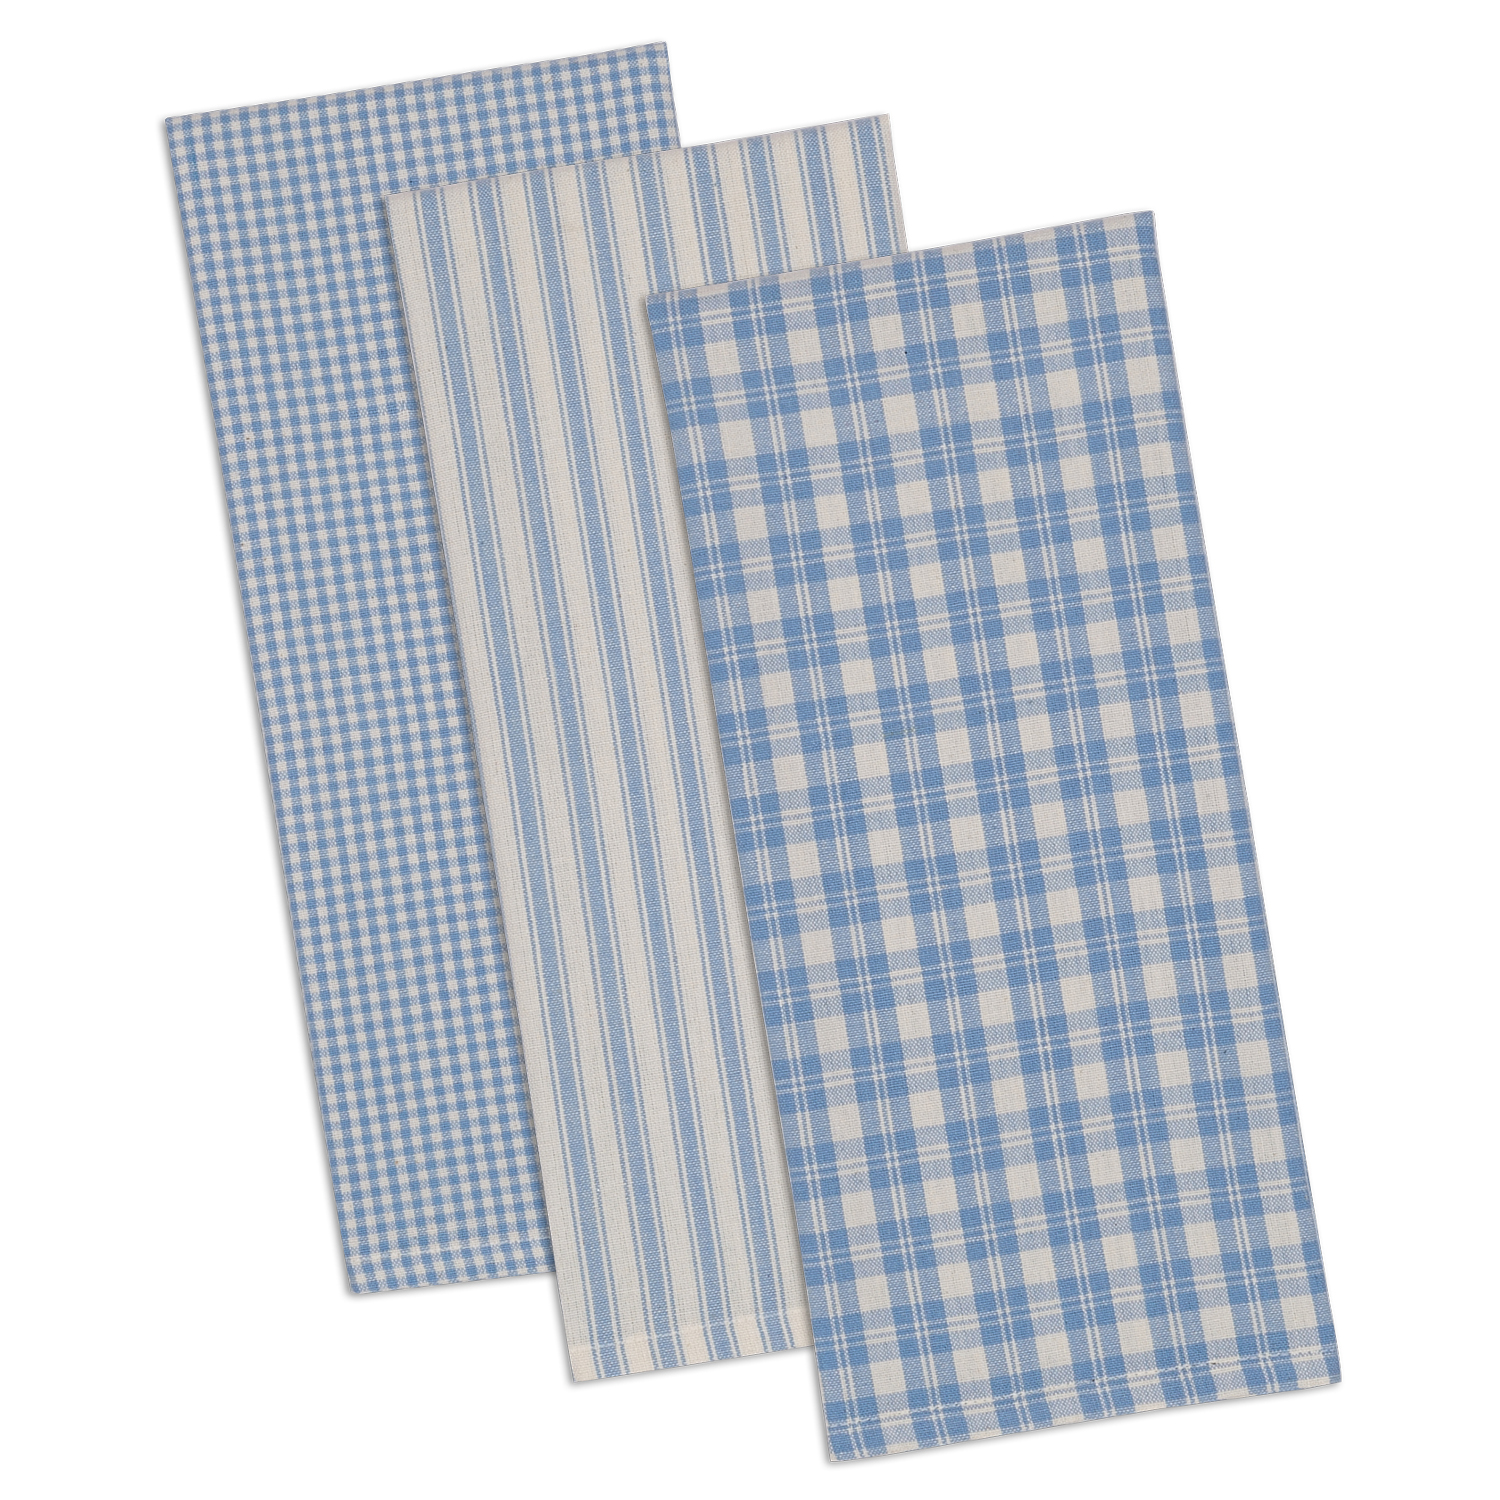 Design Imports Classic Dishtowel Set (Set of 3), Dusk Blue